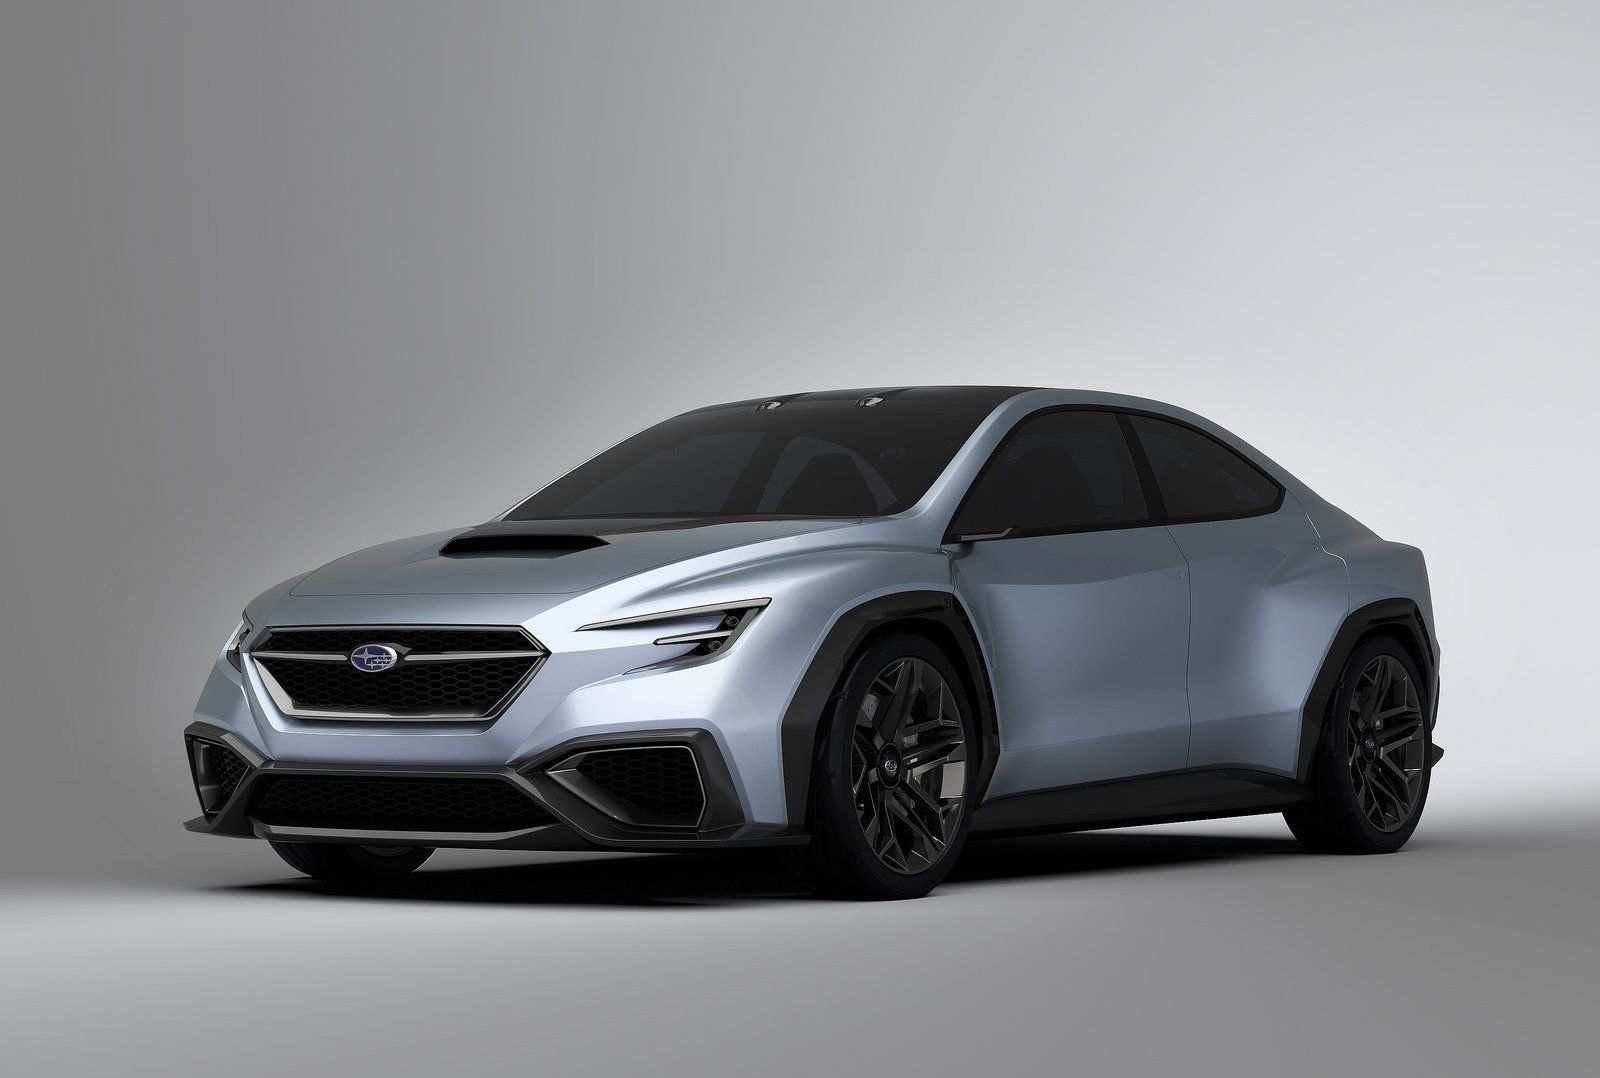 65 Best Review 2020 Subaru Wrx Exterior Date Style for 2020 Subaru Wrx Exterior Date